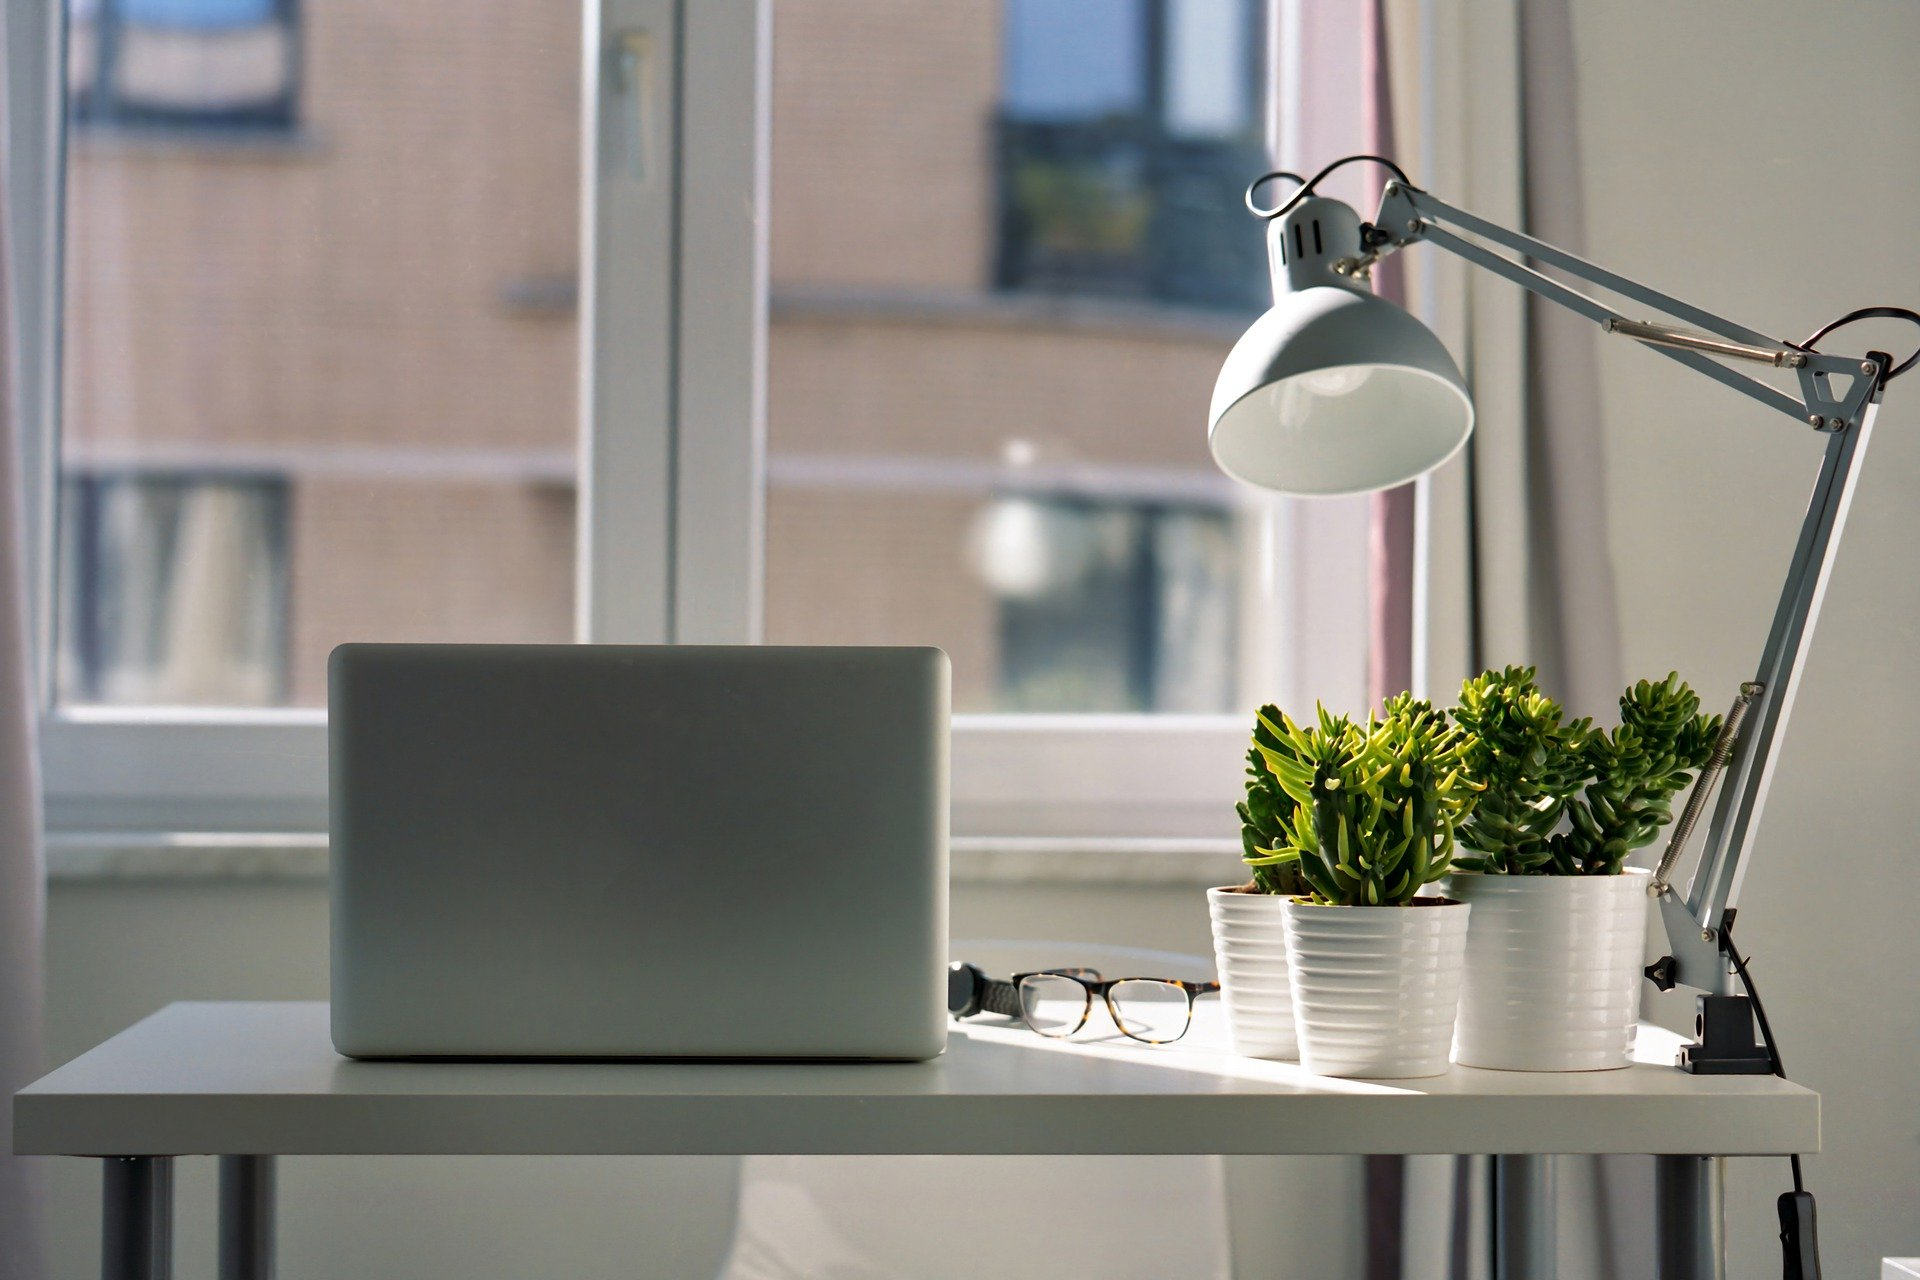 Home office with laptop in front of a window